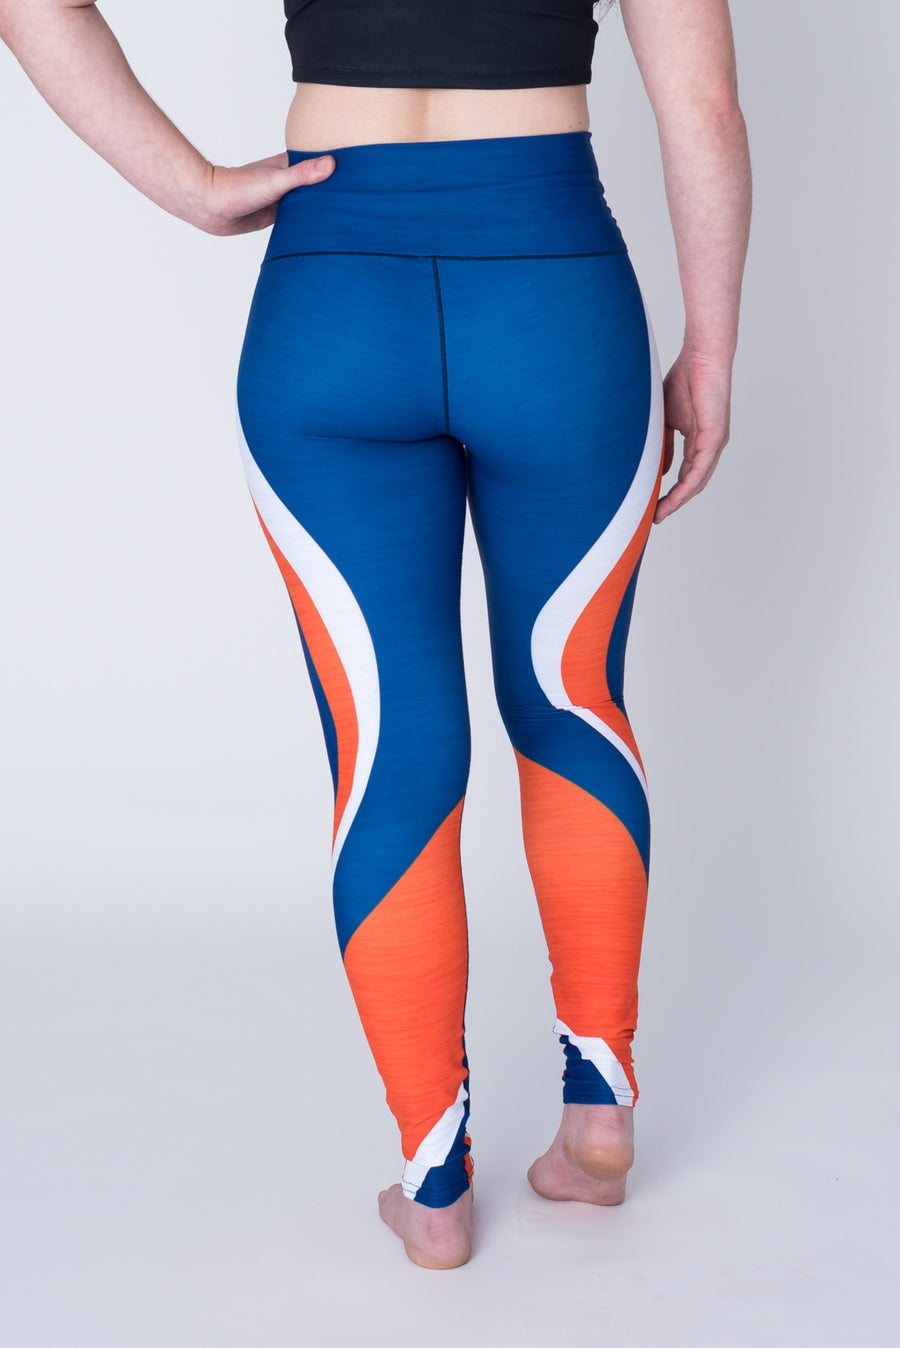 Blue & Orange Yoga Pants